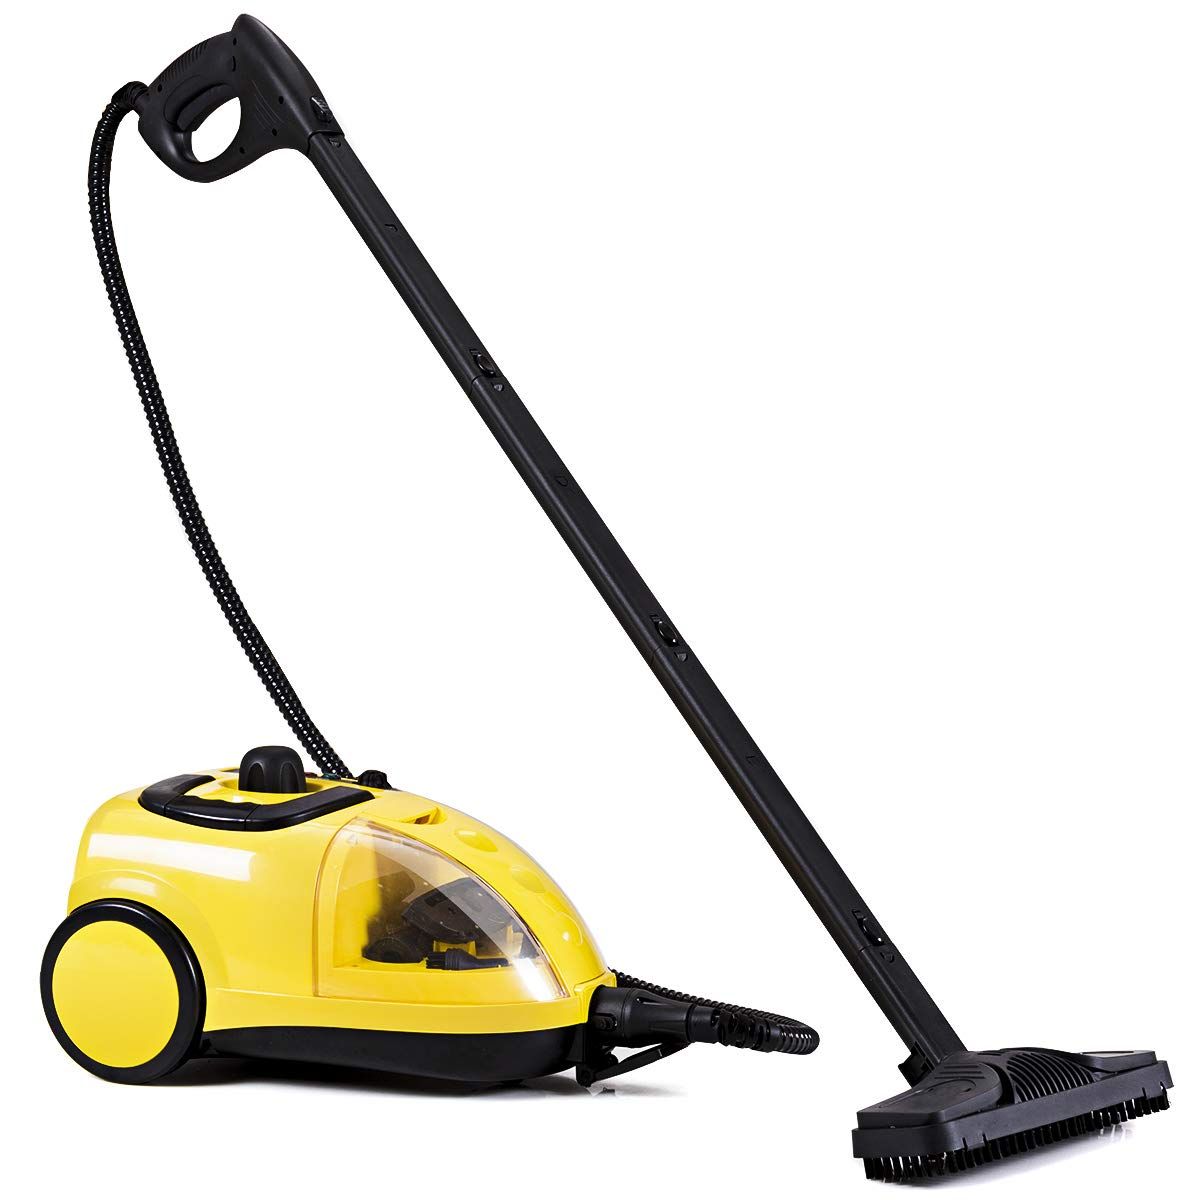 COSTWAY Steam Cleaner, Adjustable Heavy Duty Professional Steam Cleaning, Cleaning Machine-Included 17 Accessories, Ideal for Floors, Windows, 1500W